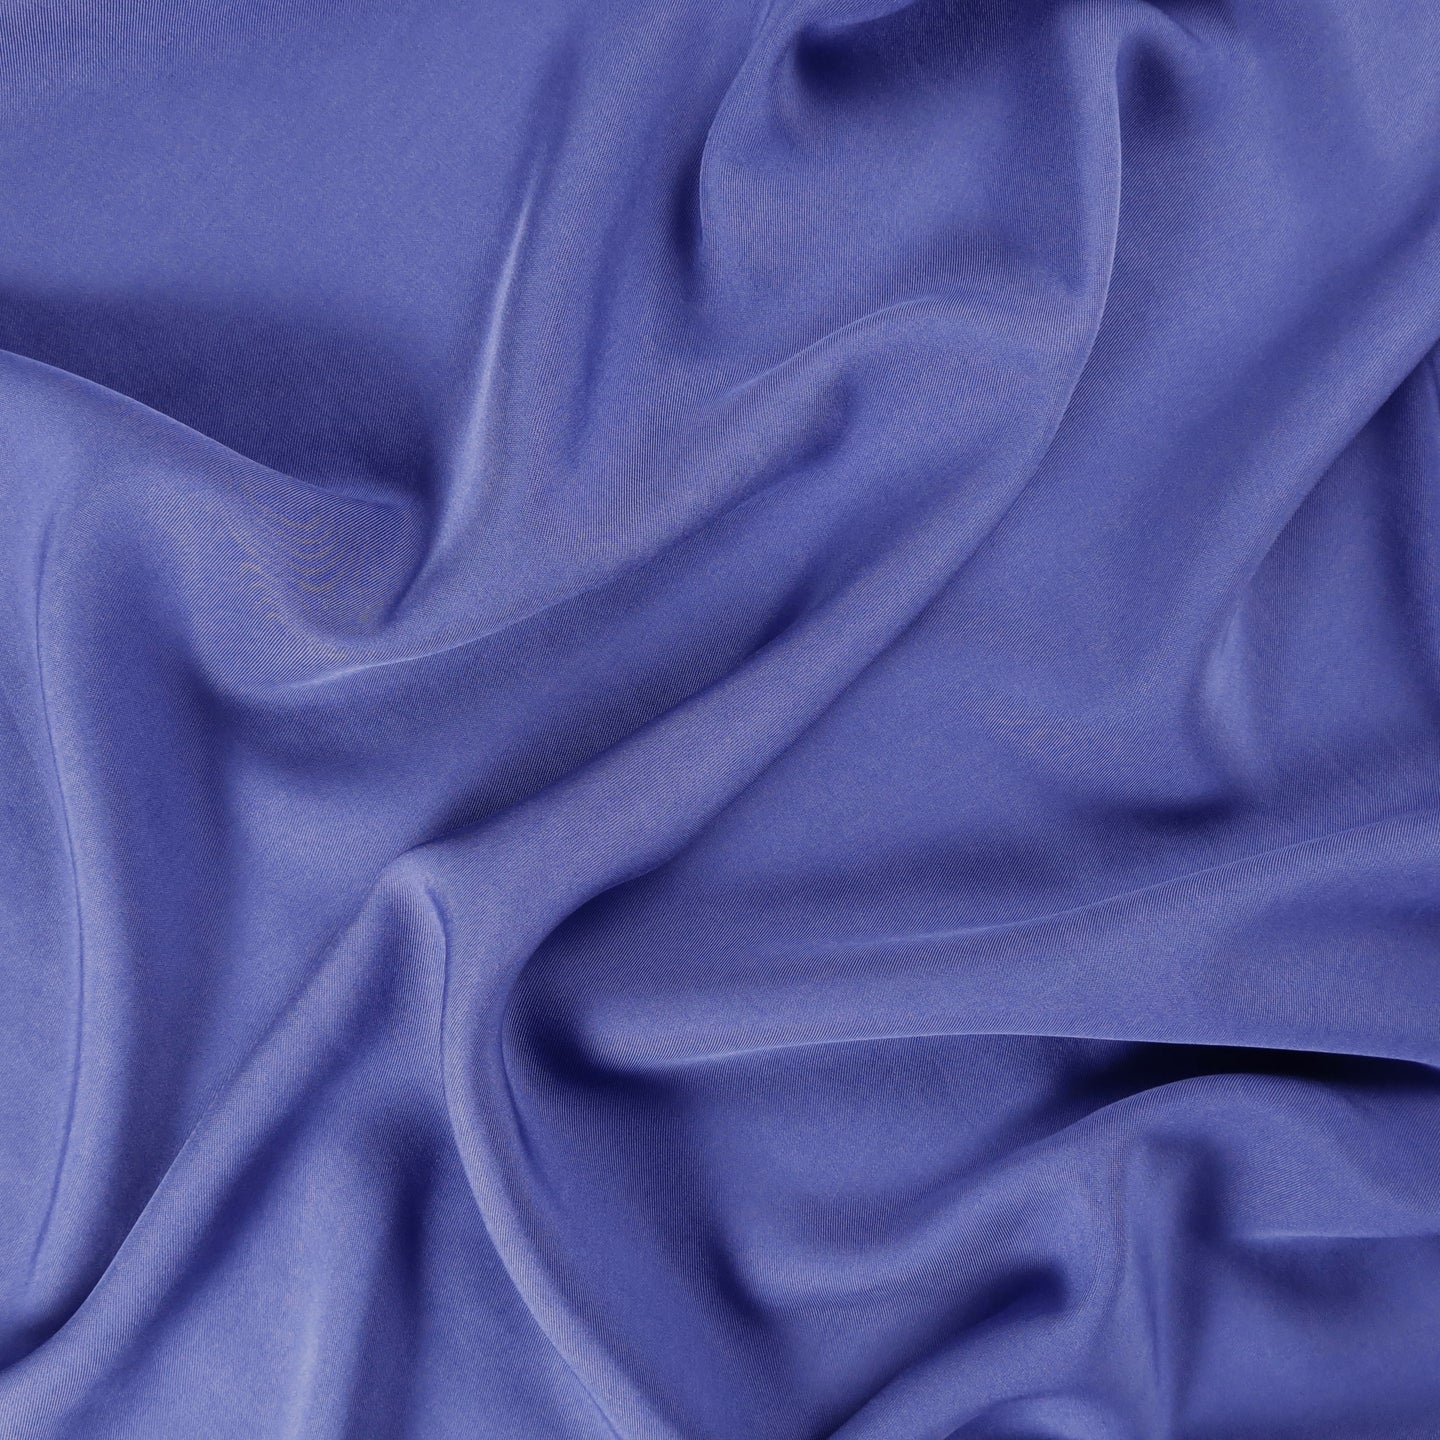 Tencel twill - Ultraviolet purple 0.5m